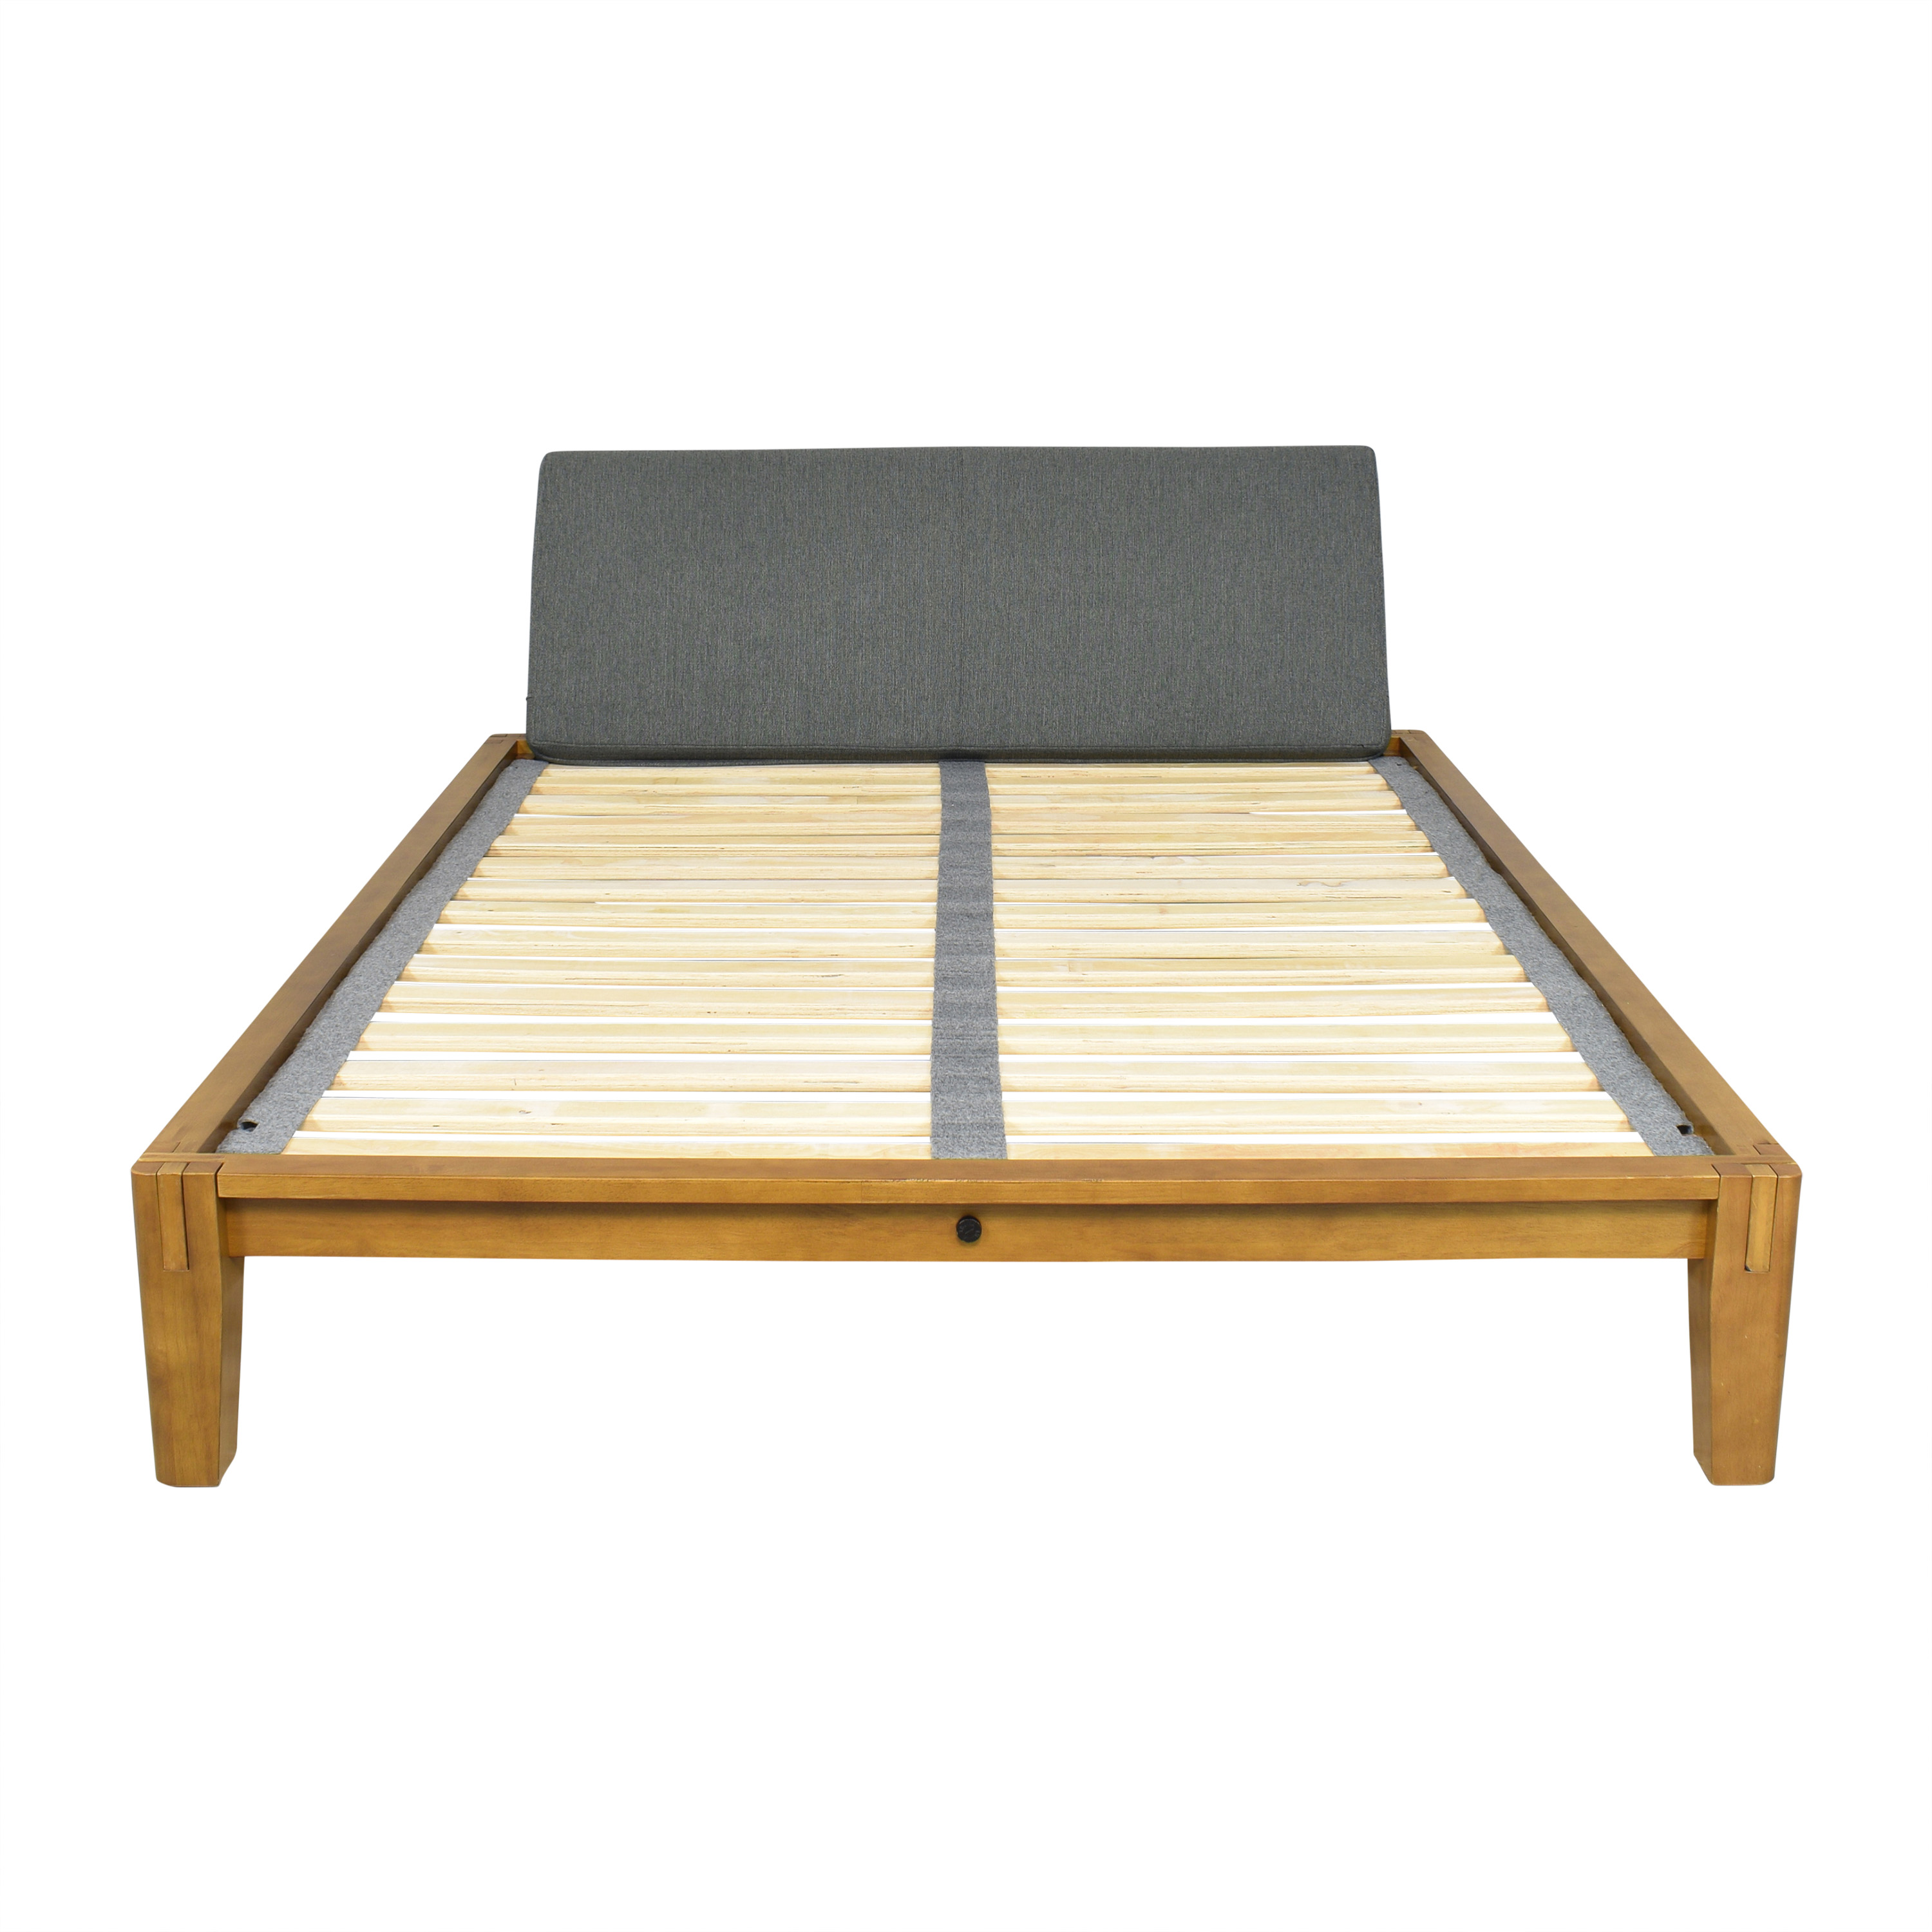 Thuma The Bed Queen Frame sale